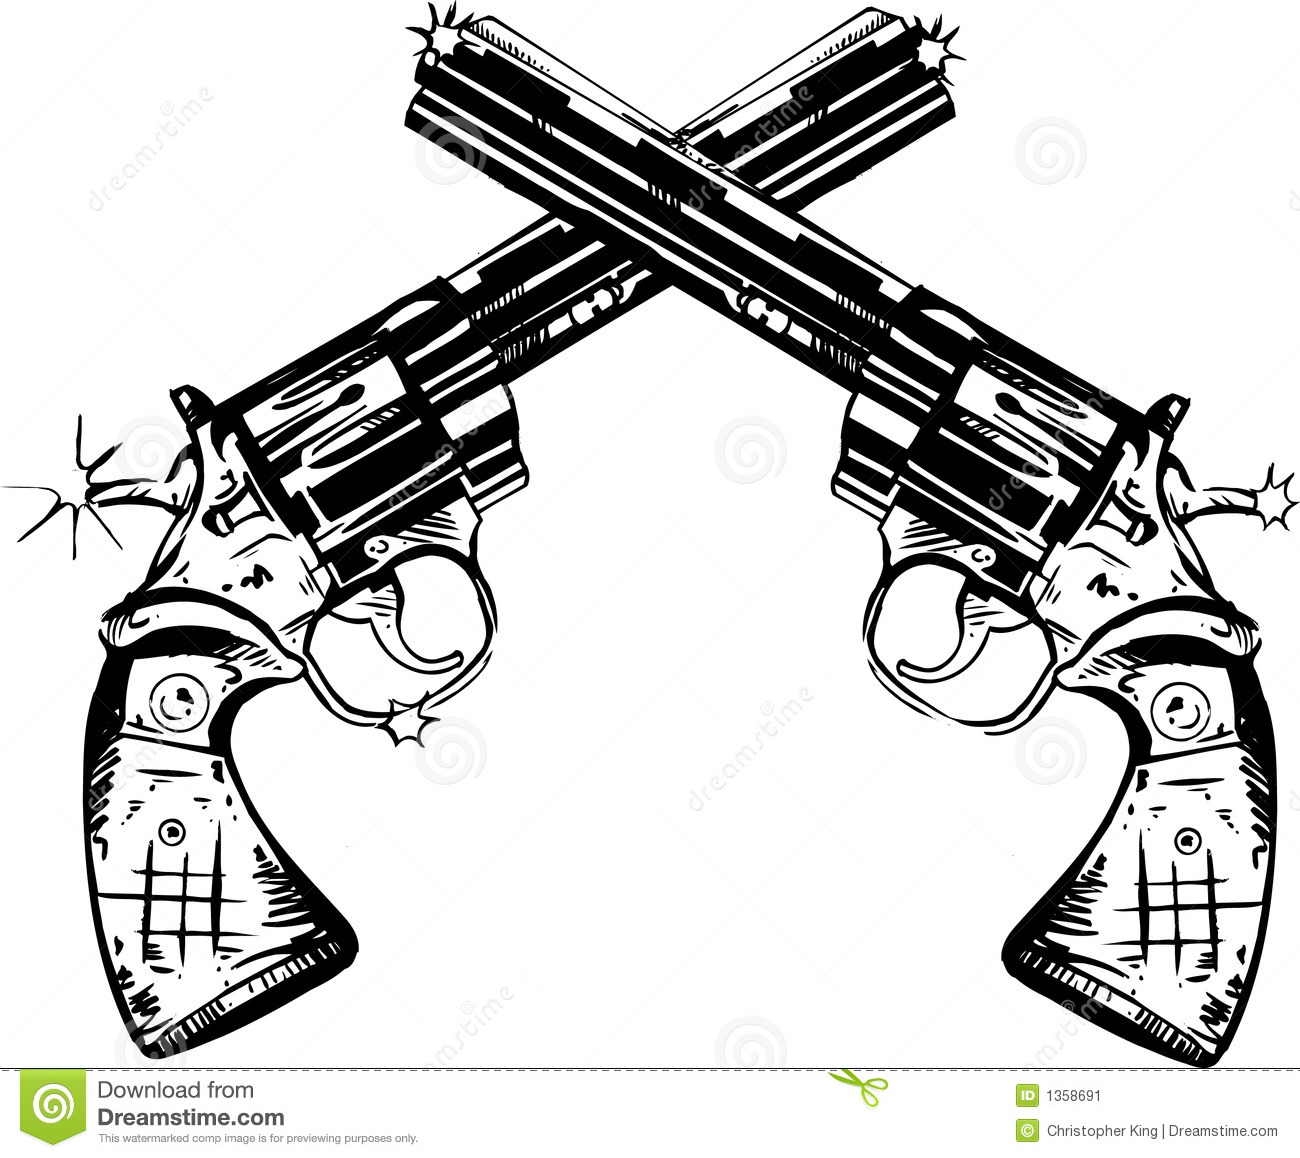 Clip Art Guns Clipart crossed guns clipart kid pen and ink illustration of two magnum pistols mr no pr 5 4532 36